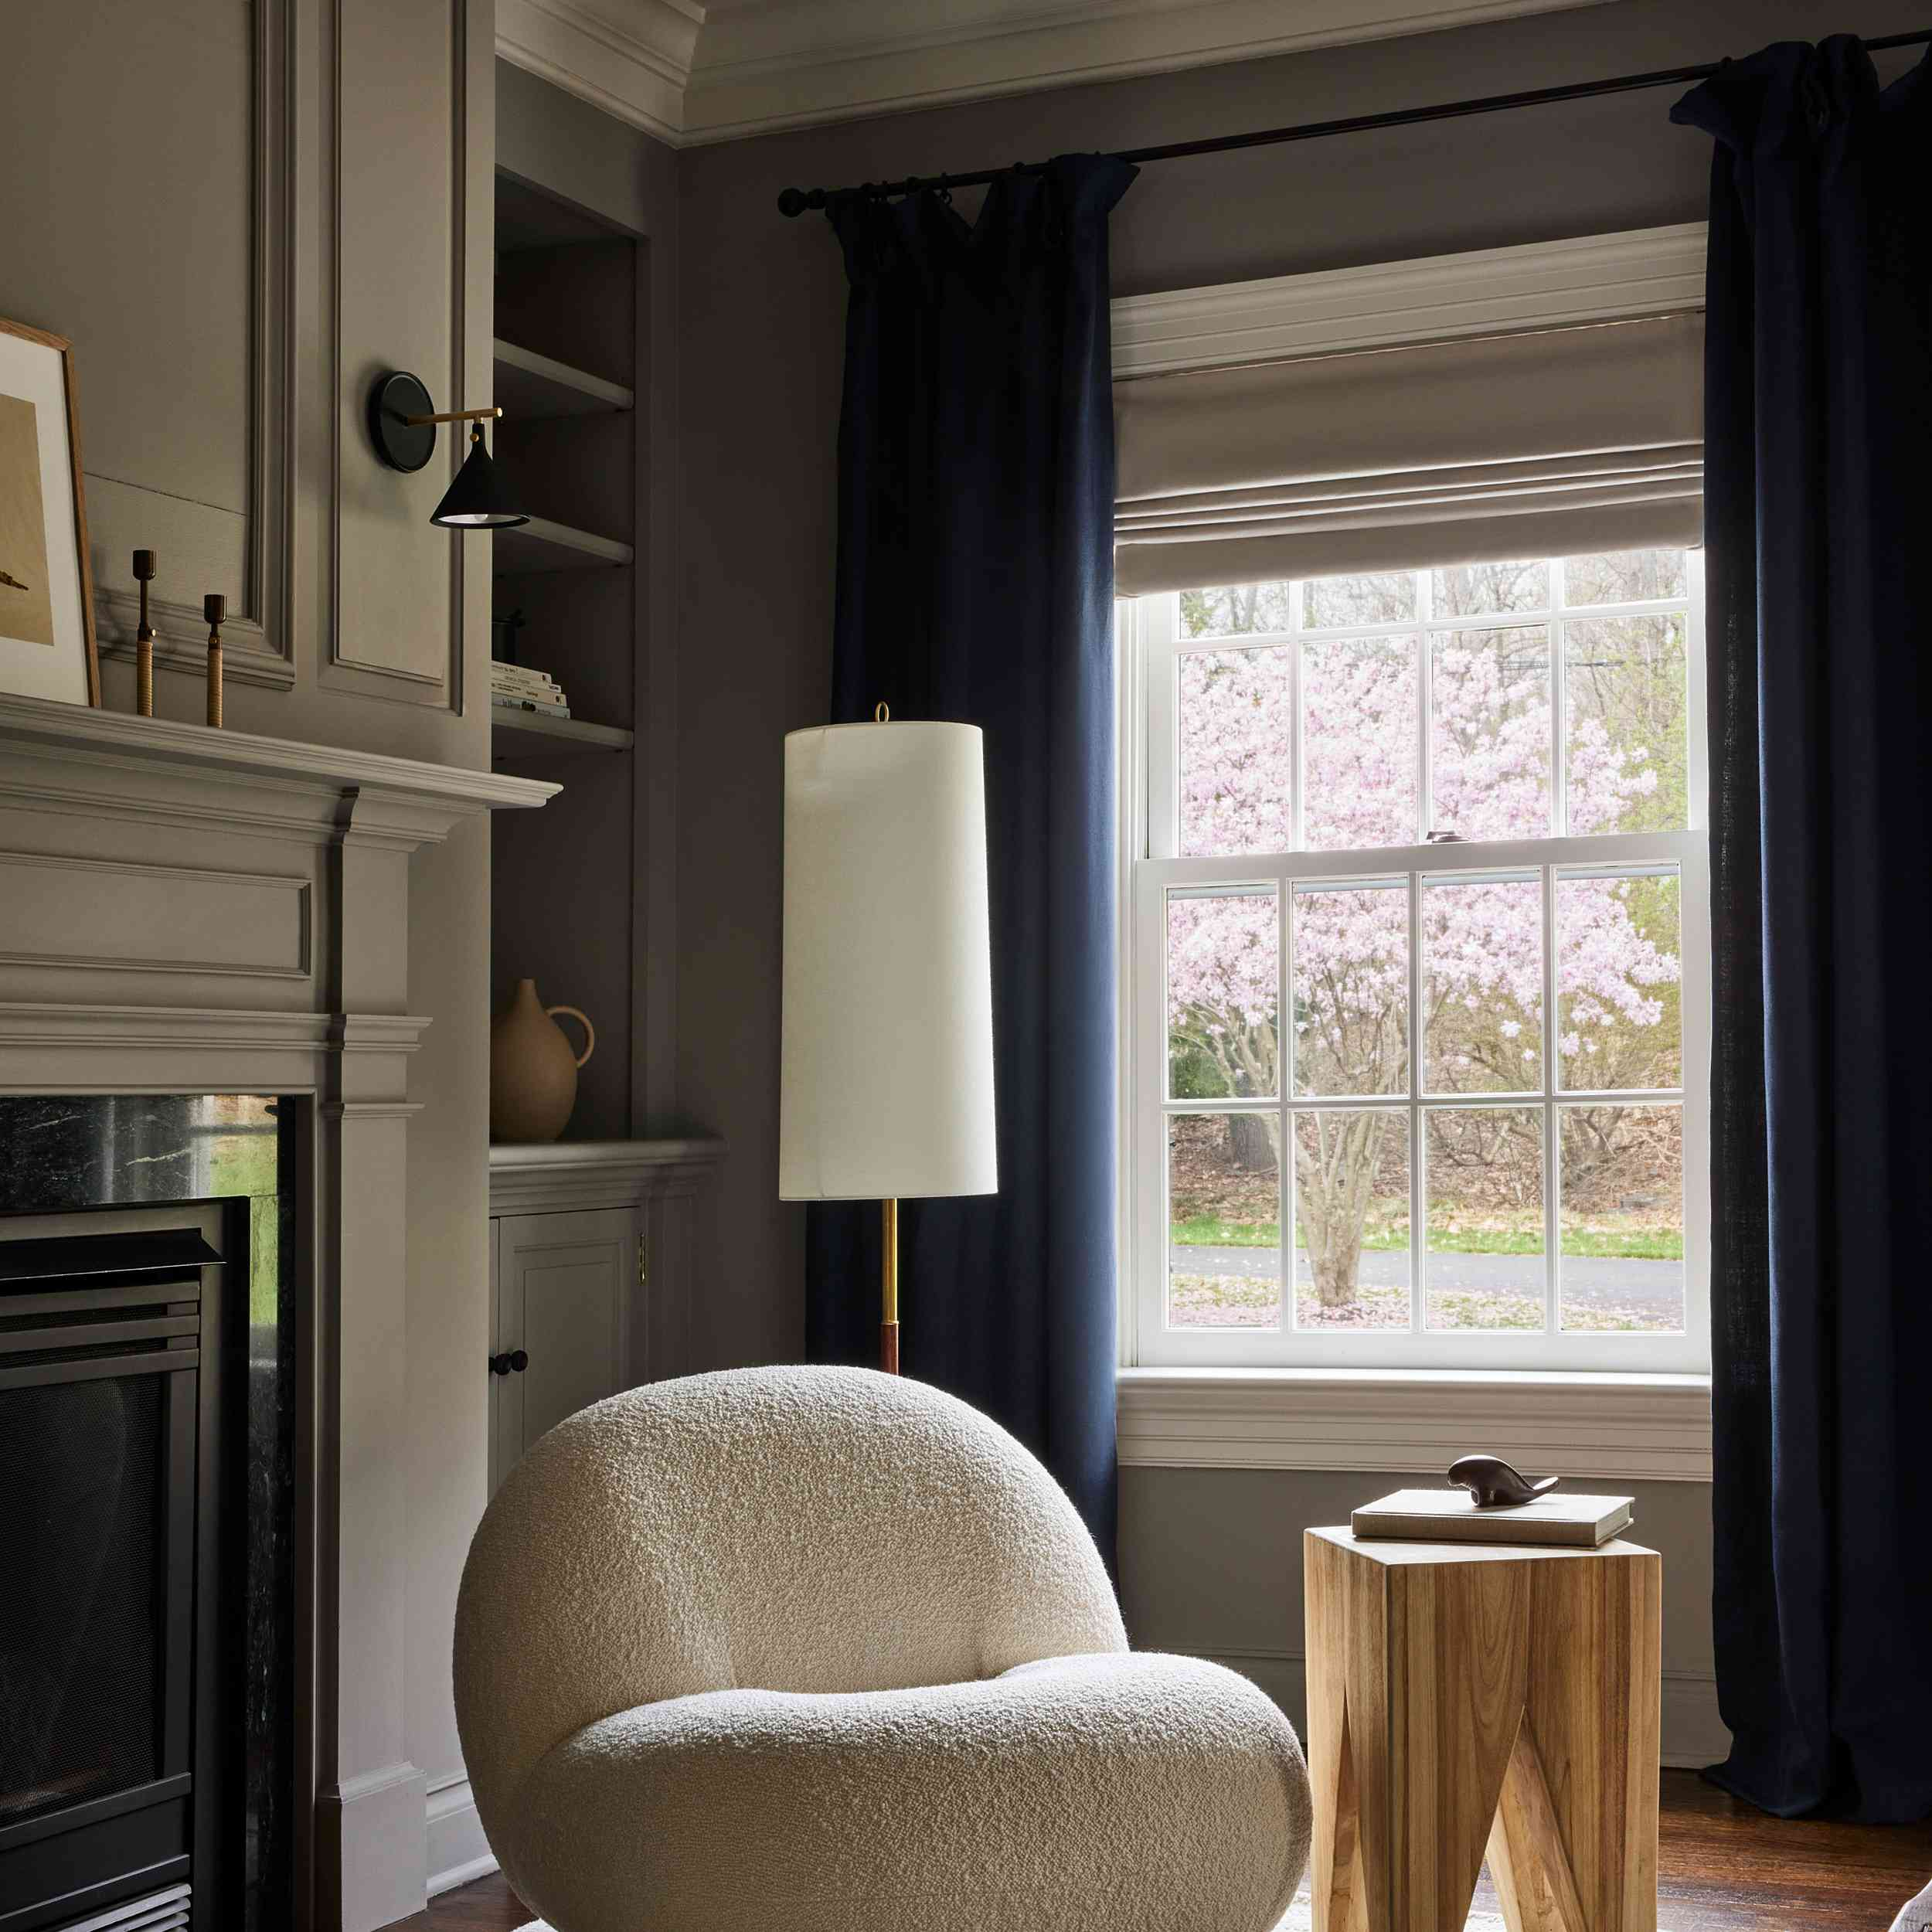 connecticut farmhouse home tour - bedroom with boucle chair and navy curtains